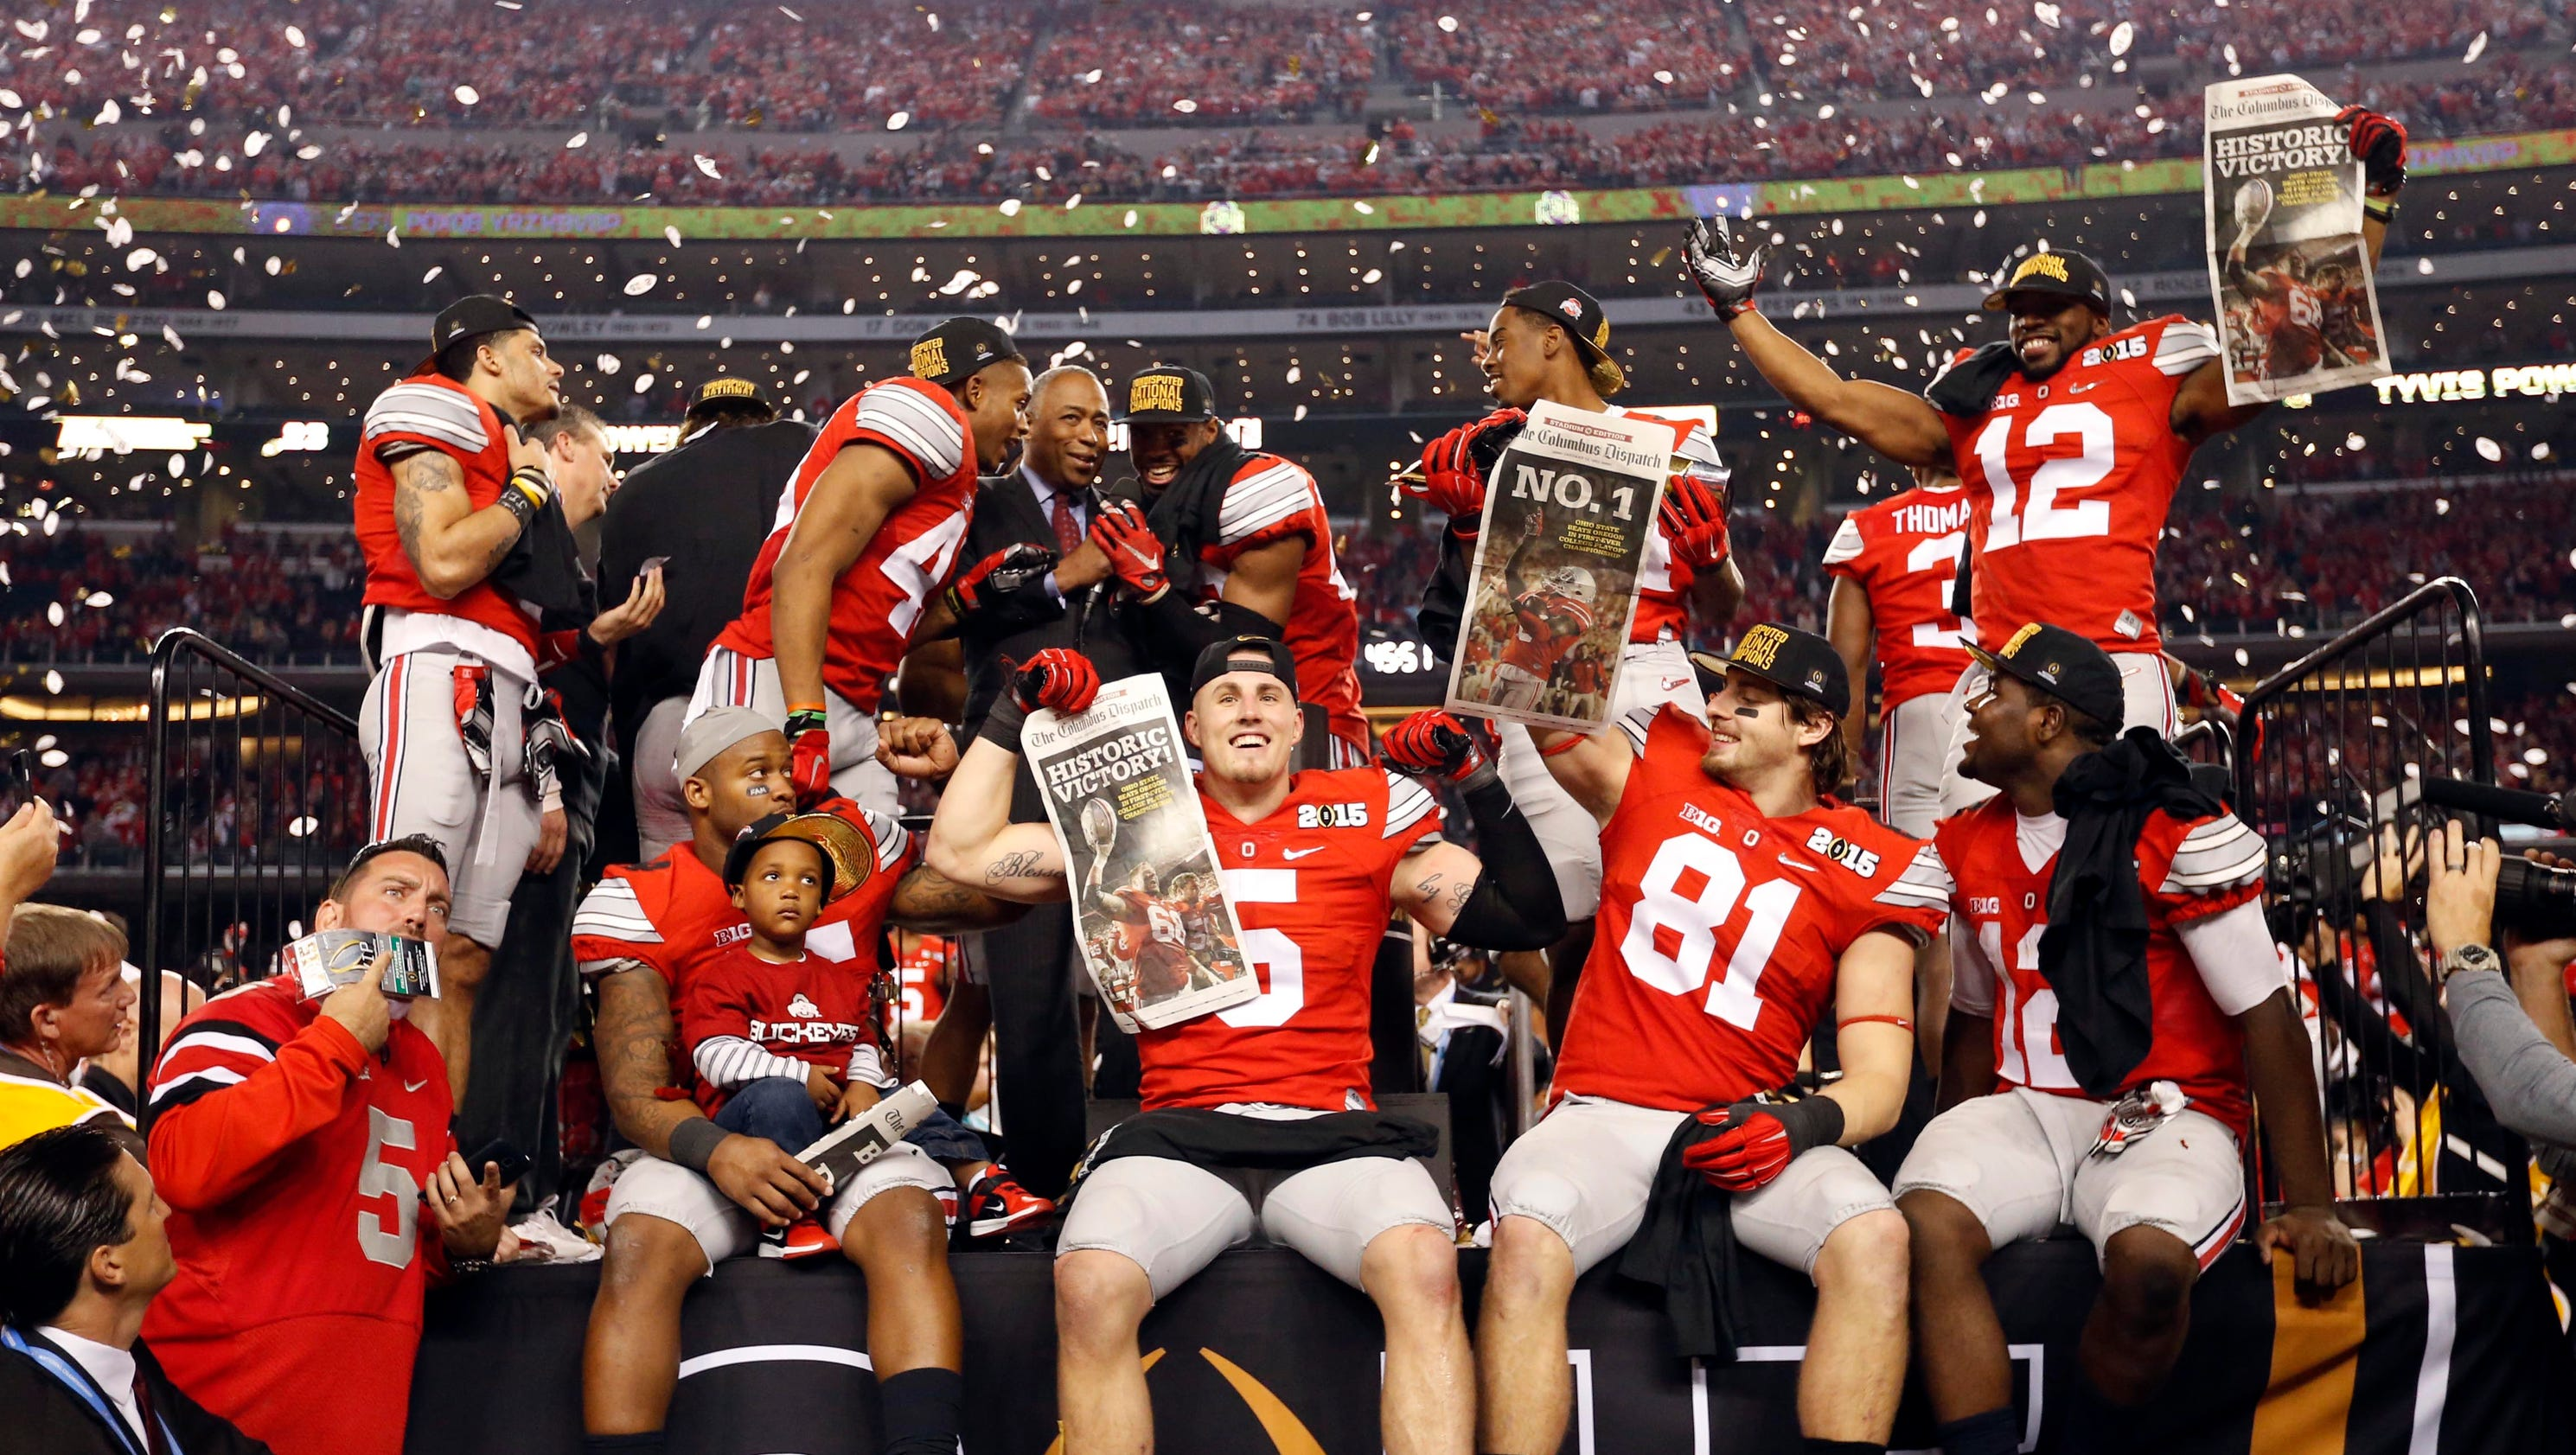 2015 national college football champions todays college scores